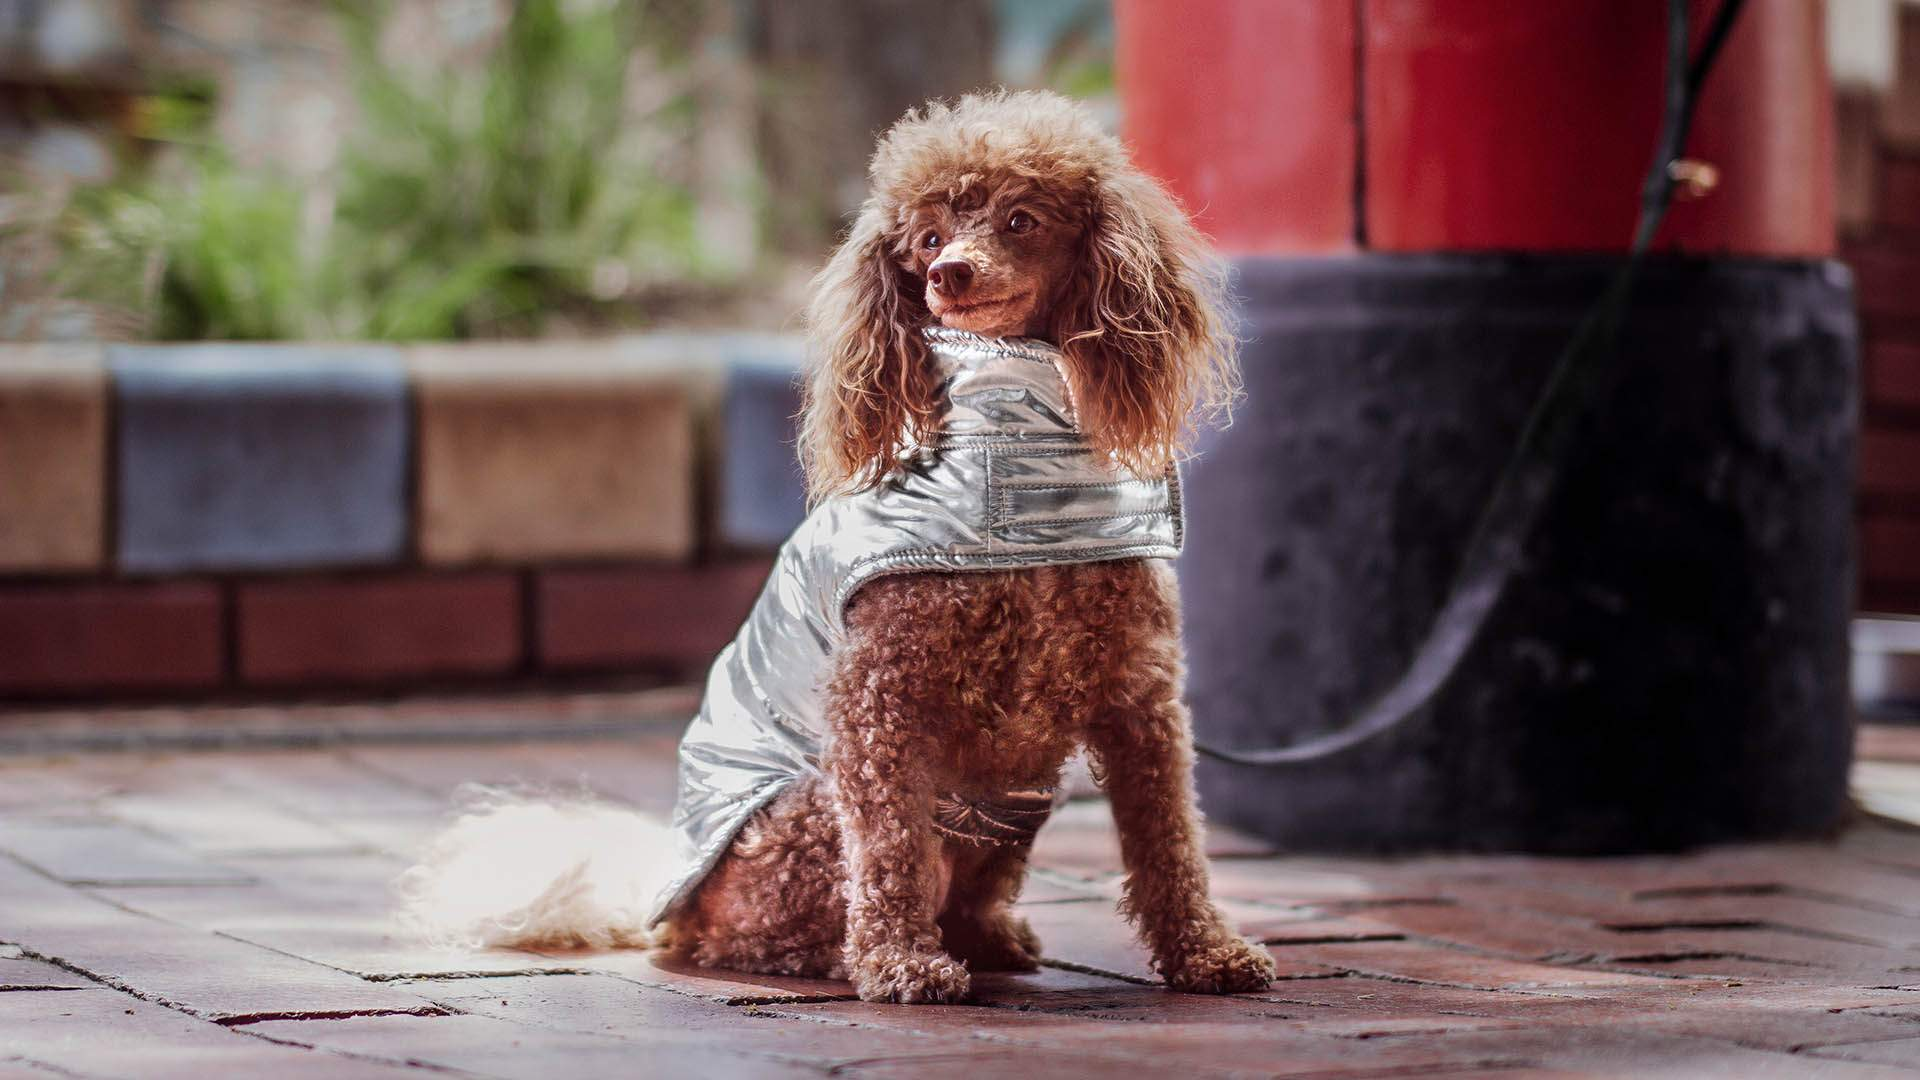 Petstock Has Released a New Line of Accessories to Keep Your Pets Cute and Cosy This Winter